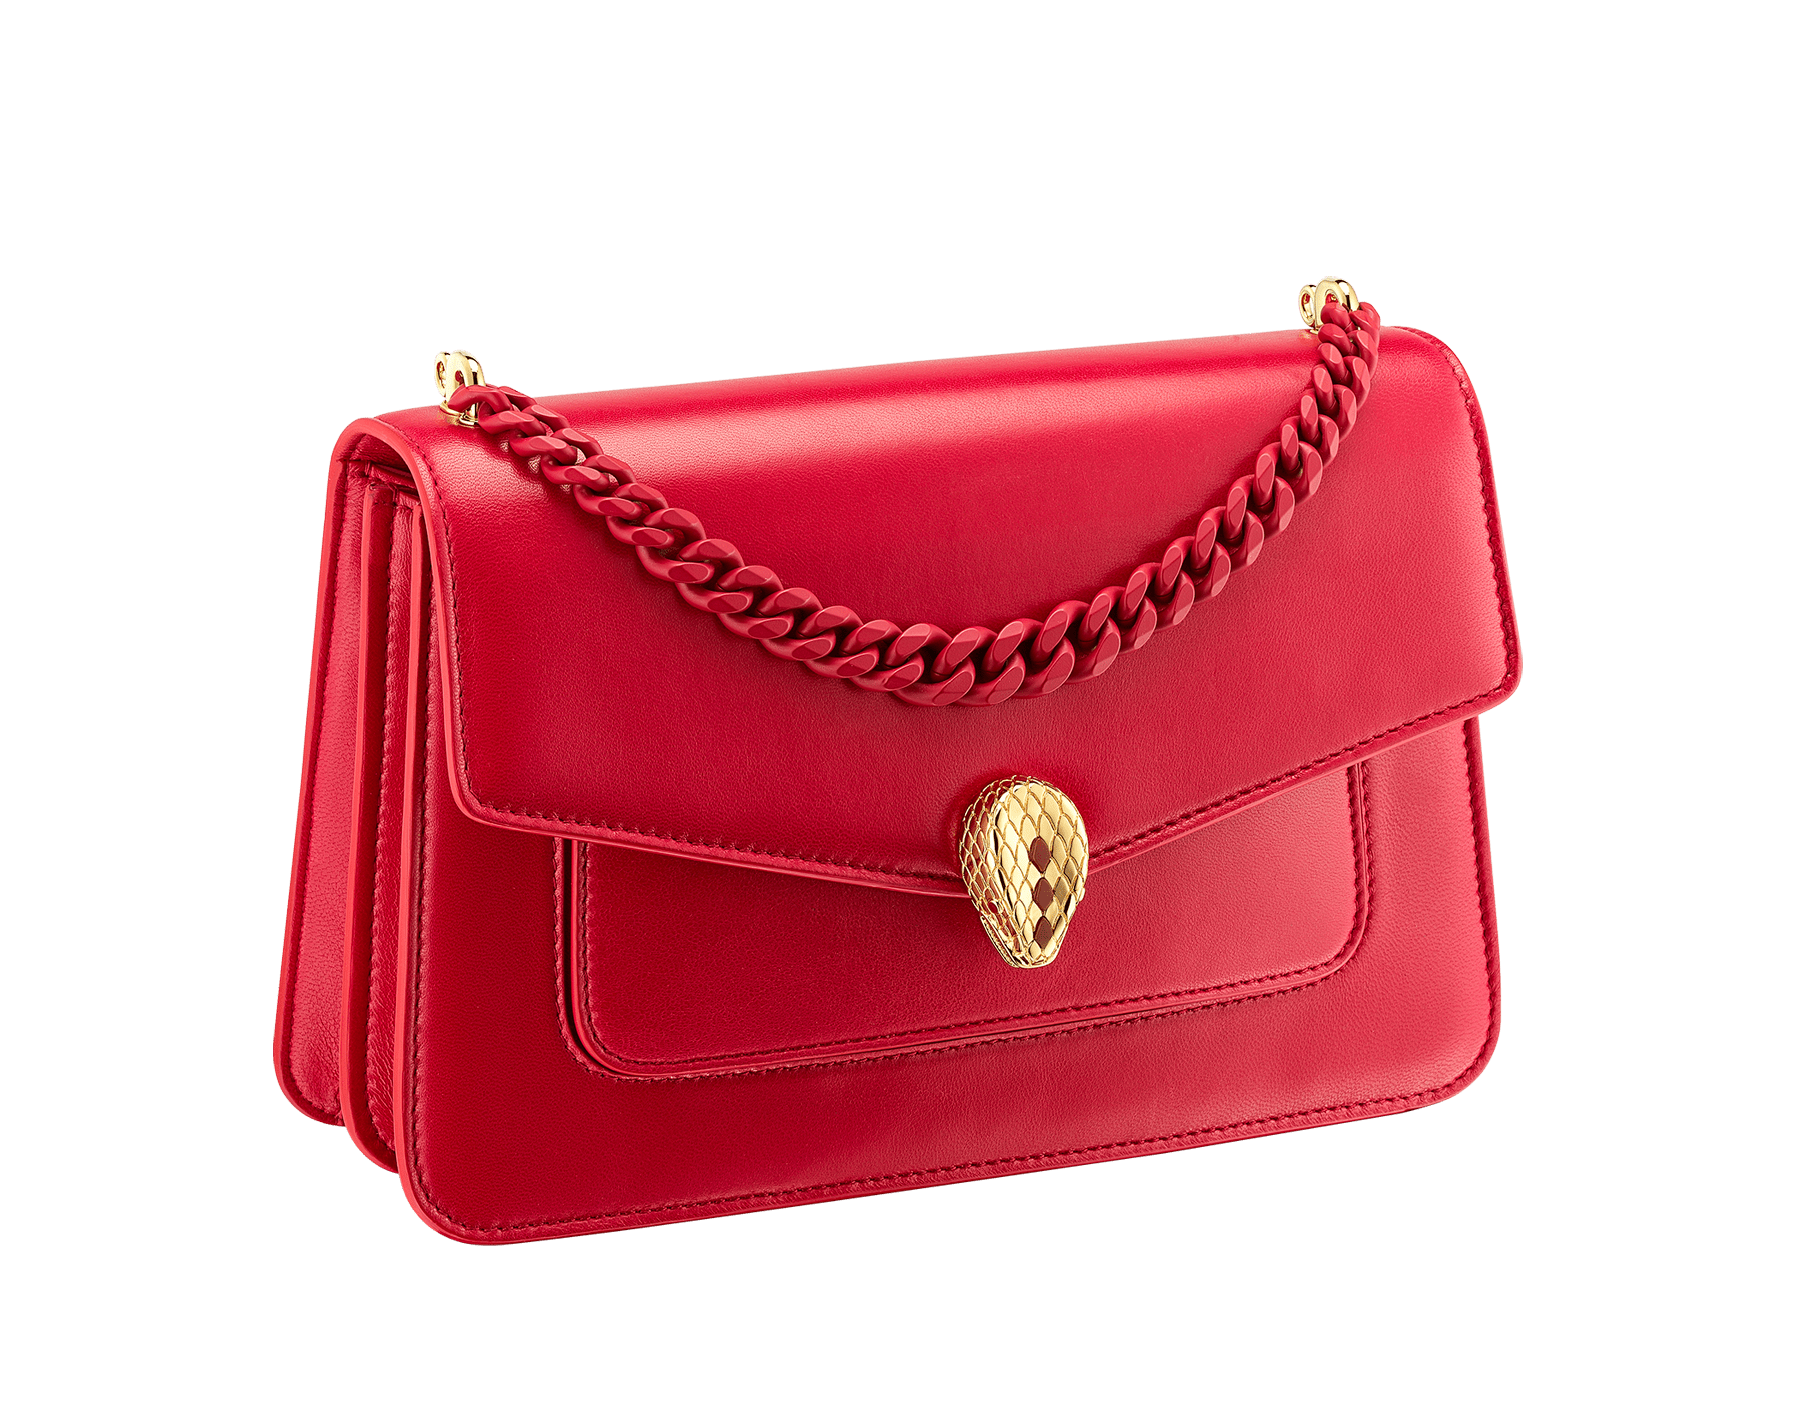 """""""Serpenti Forever"""" maxi chain crossbody bag in Amaranth Garnet red nappa leather, with Pink Spinel fuchsia nappa leather internal lining. New Serpenti head closure in gold plated brass, finished with small red carnelian scales in the middle and red enamel eyes. 1138-MCN image 2"""